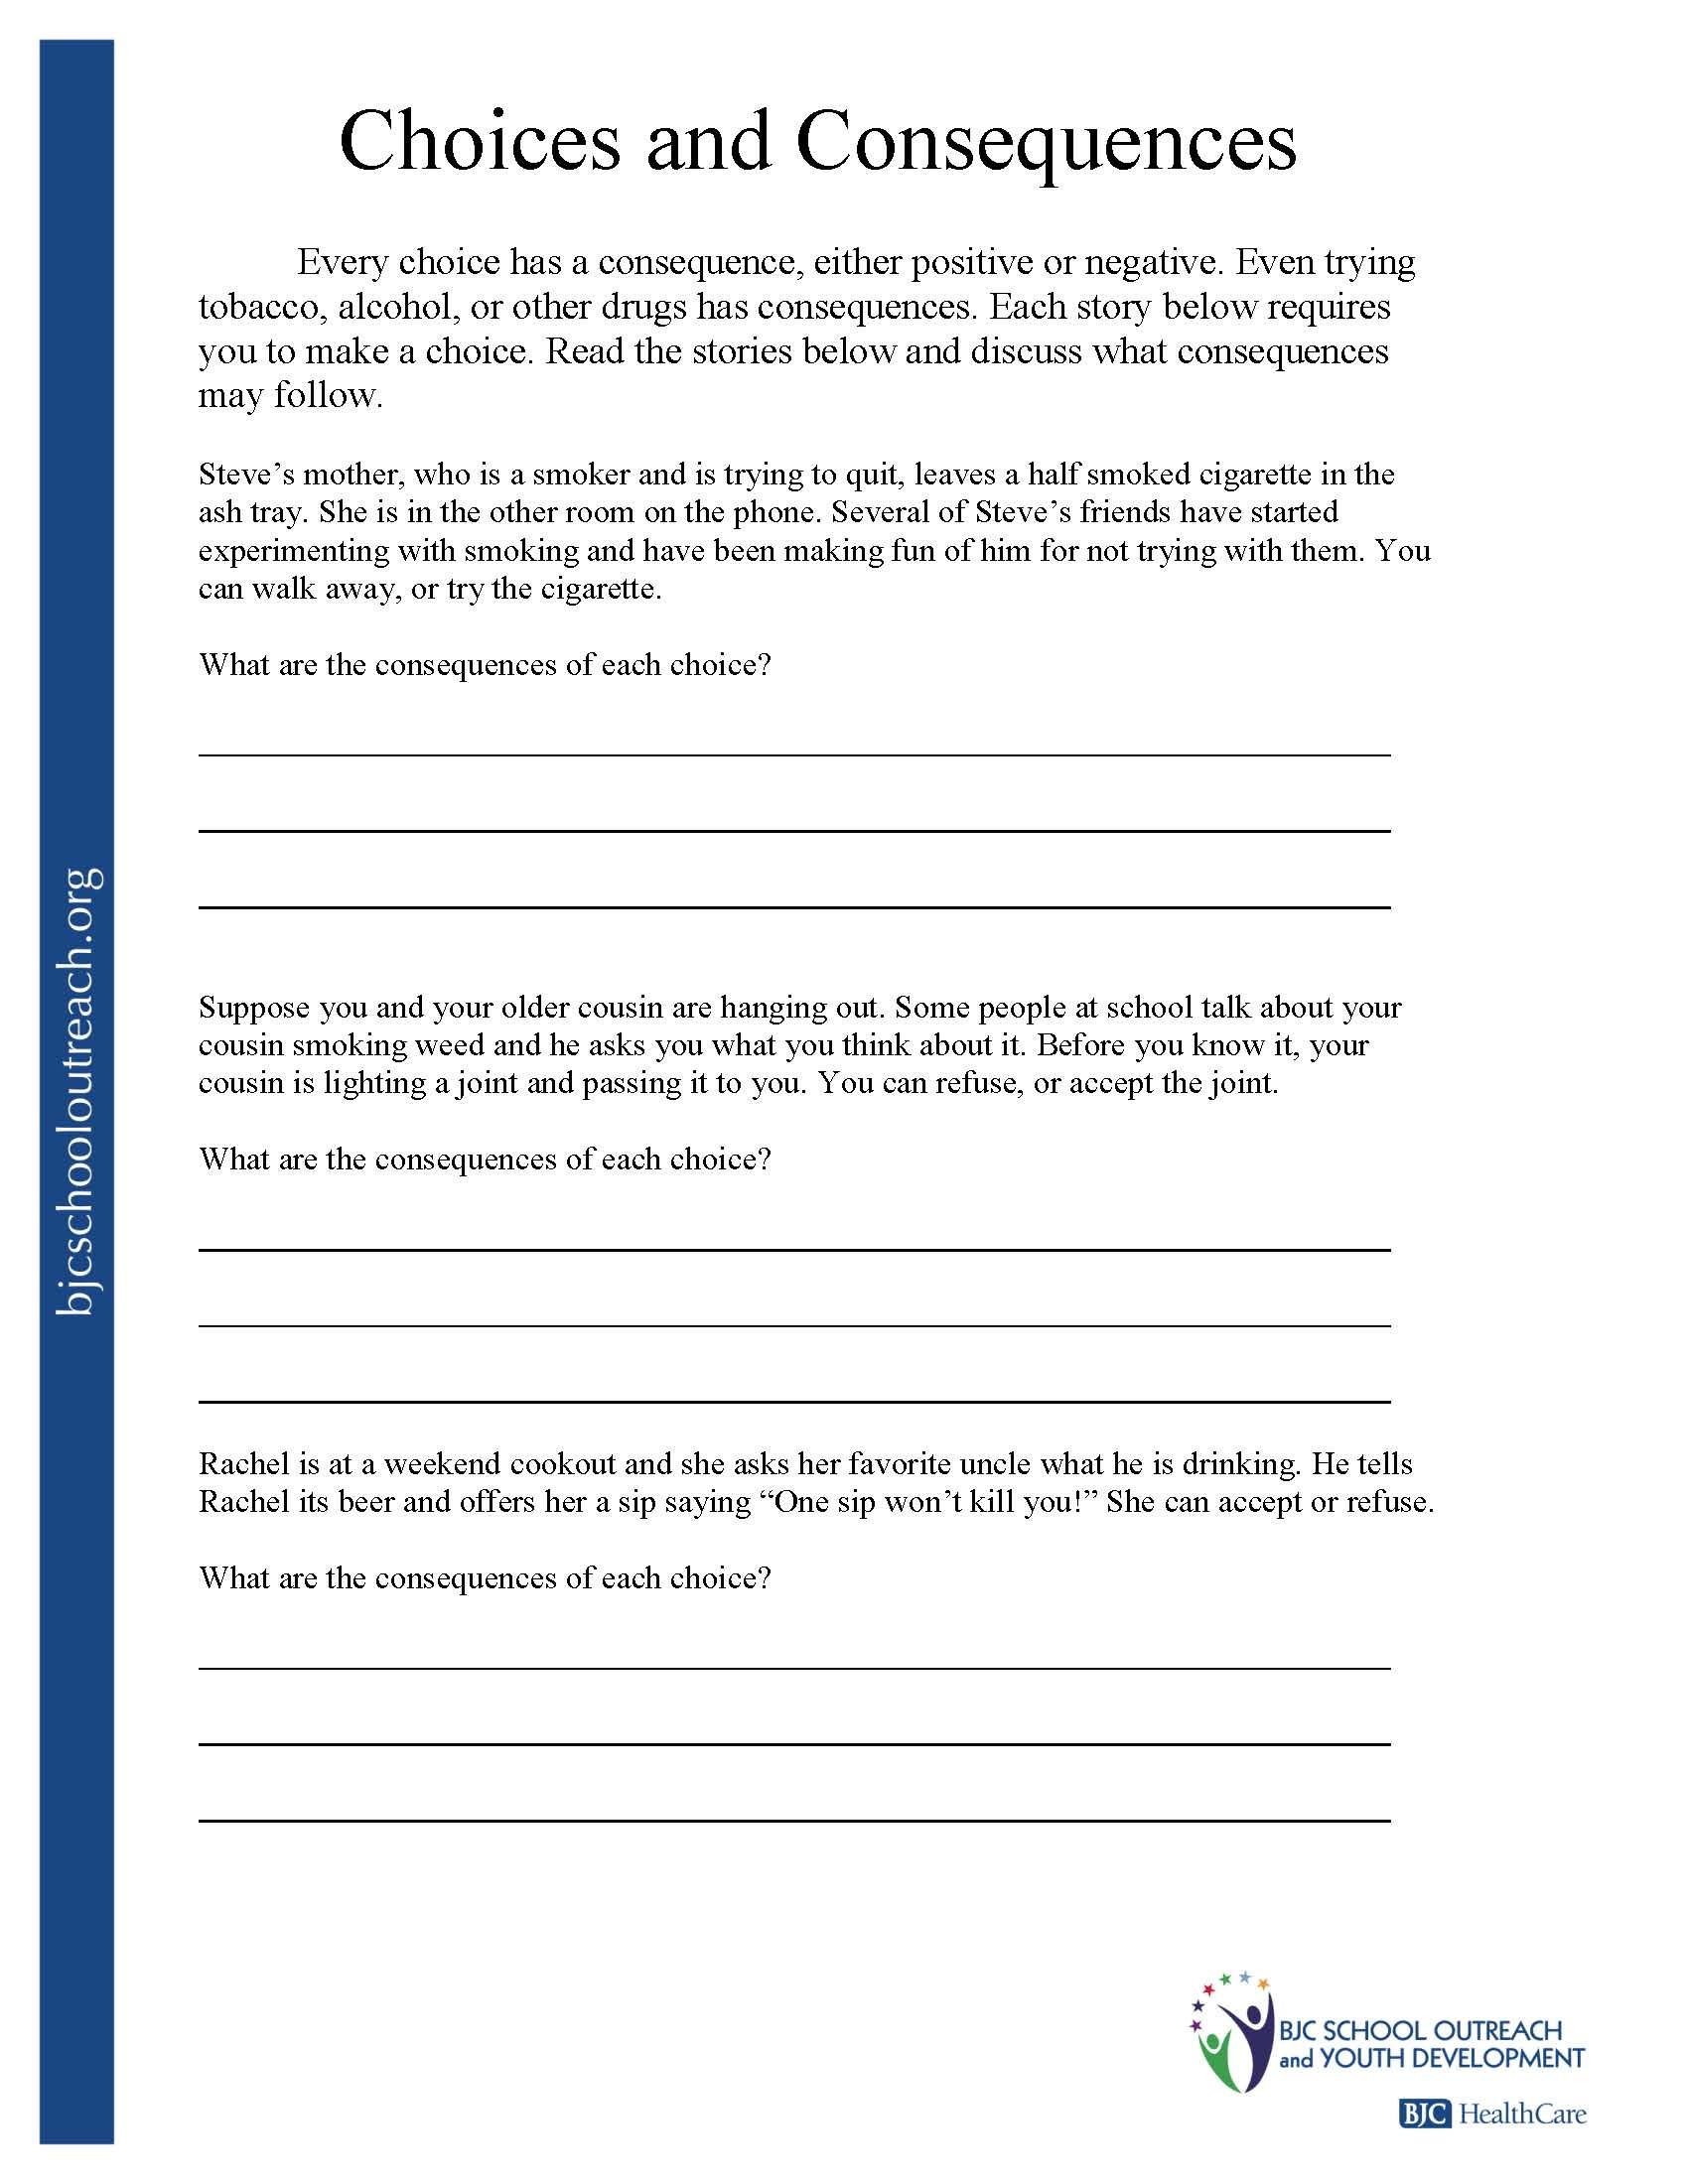 medium resolution of making the right choices worksheets - Google Search   Life skills lessons